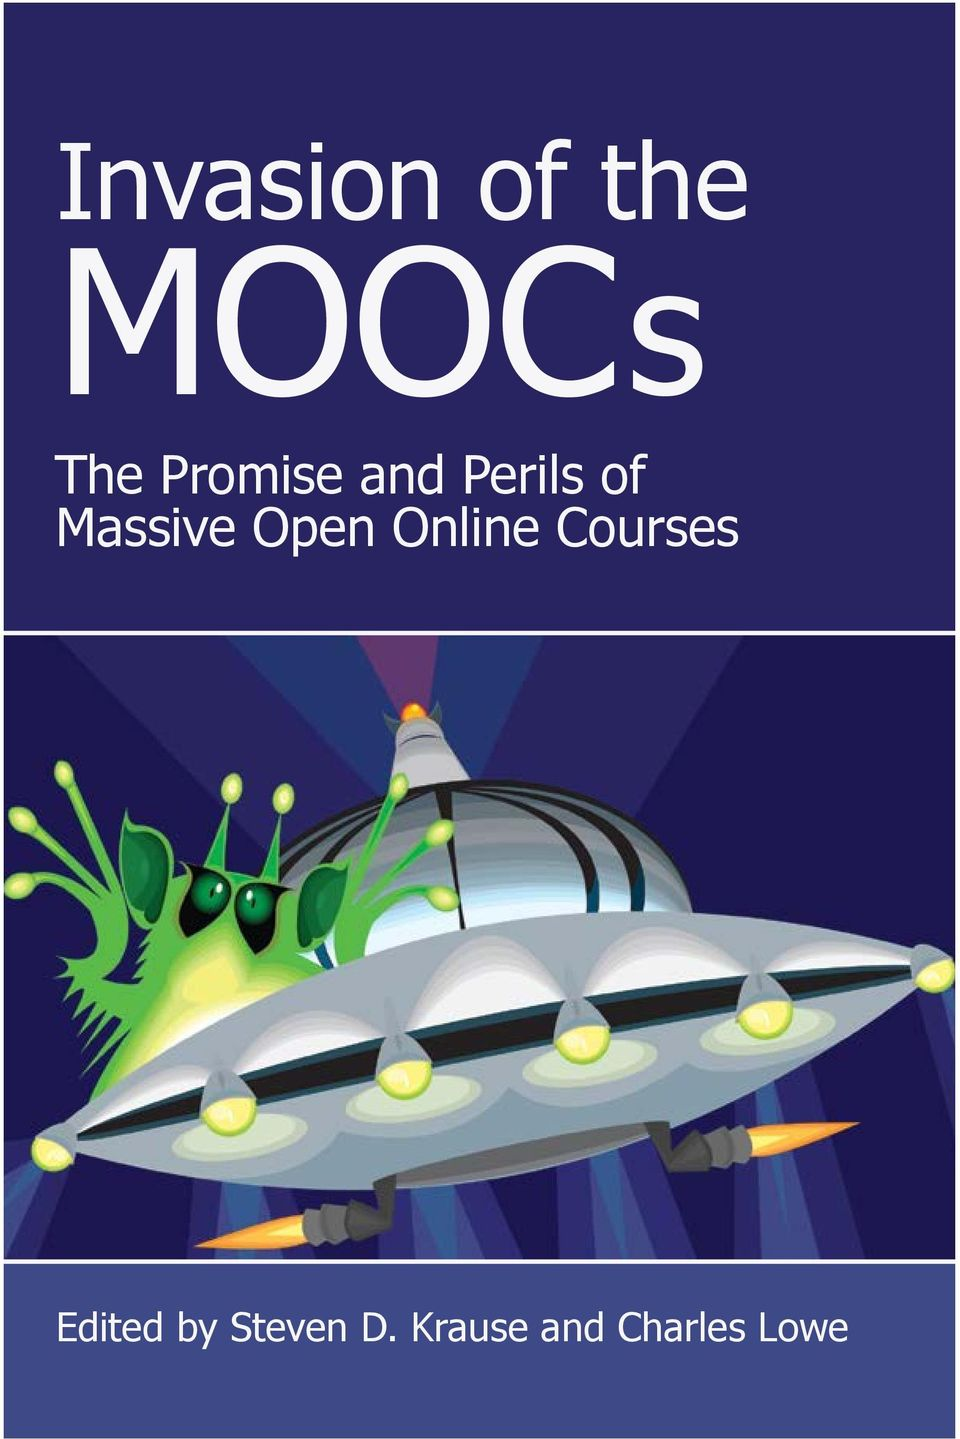 Open Online Courses Edited by